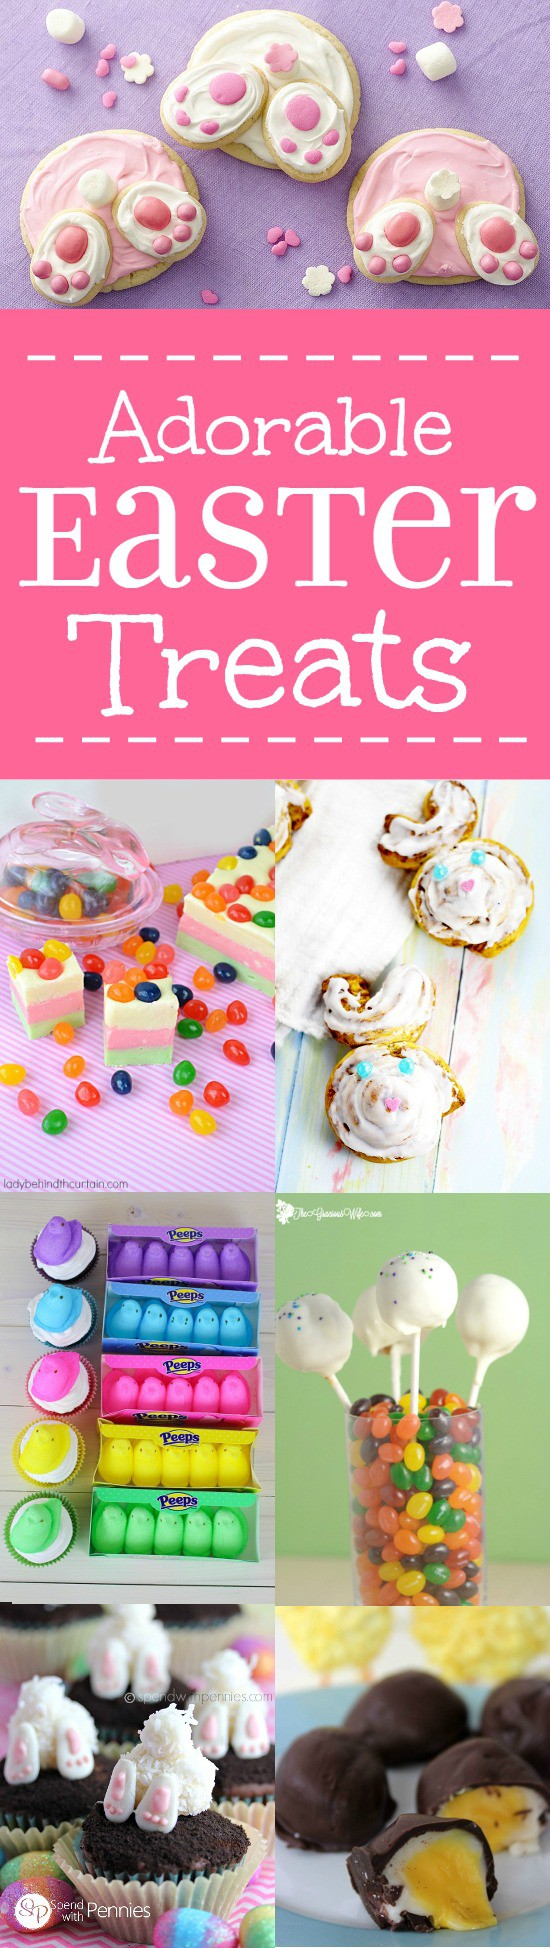 Adorable Easter Treats ideas with bunnies, bird nests, carrots, creme eggs, and more are sure to make your kids happy and your Easter celebration special. Aww these are so cute! Can't wait to make some!Adorable Easter Treats ideas with bunnies, bird nests, carrots, creme eggs, and more are sure to make your kids happy and your Easter celebration special. Aww these are so cute! Can't wait to make some!